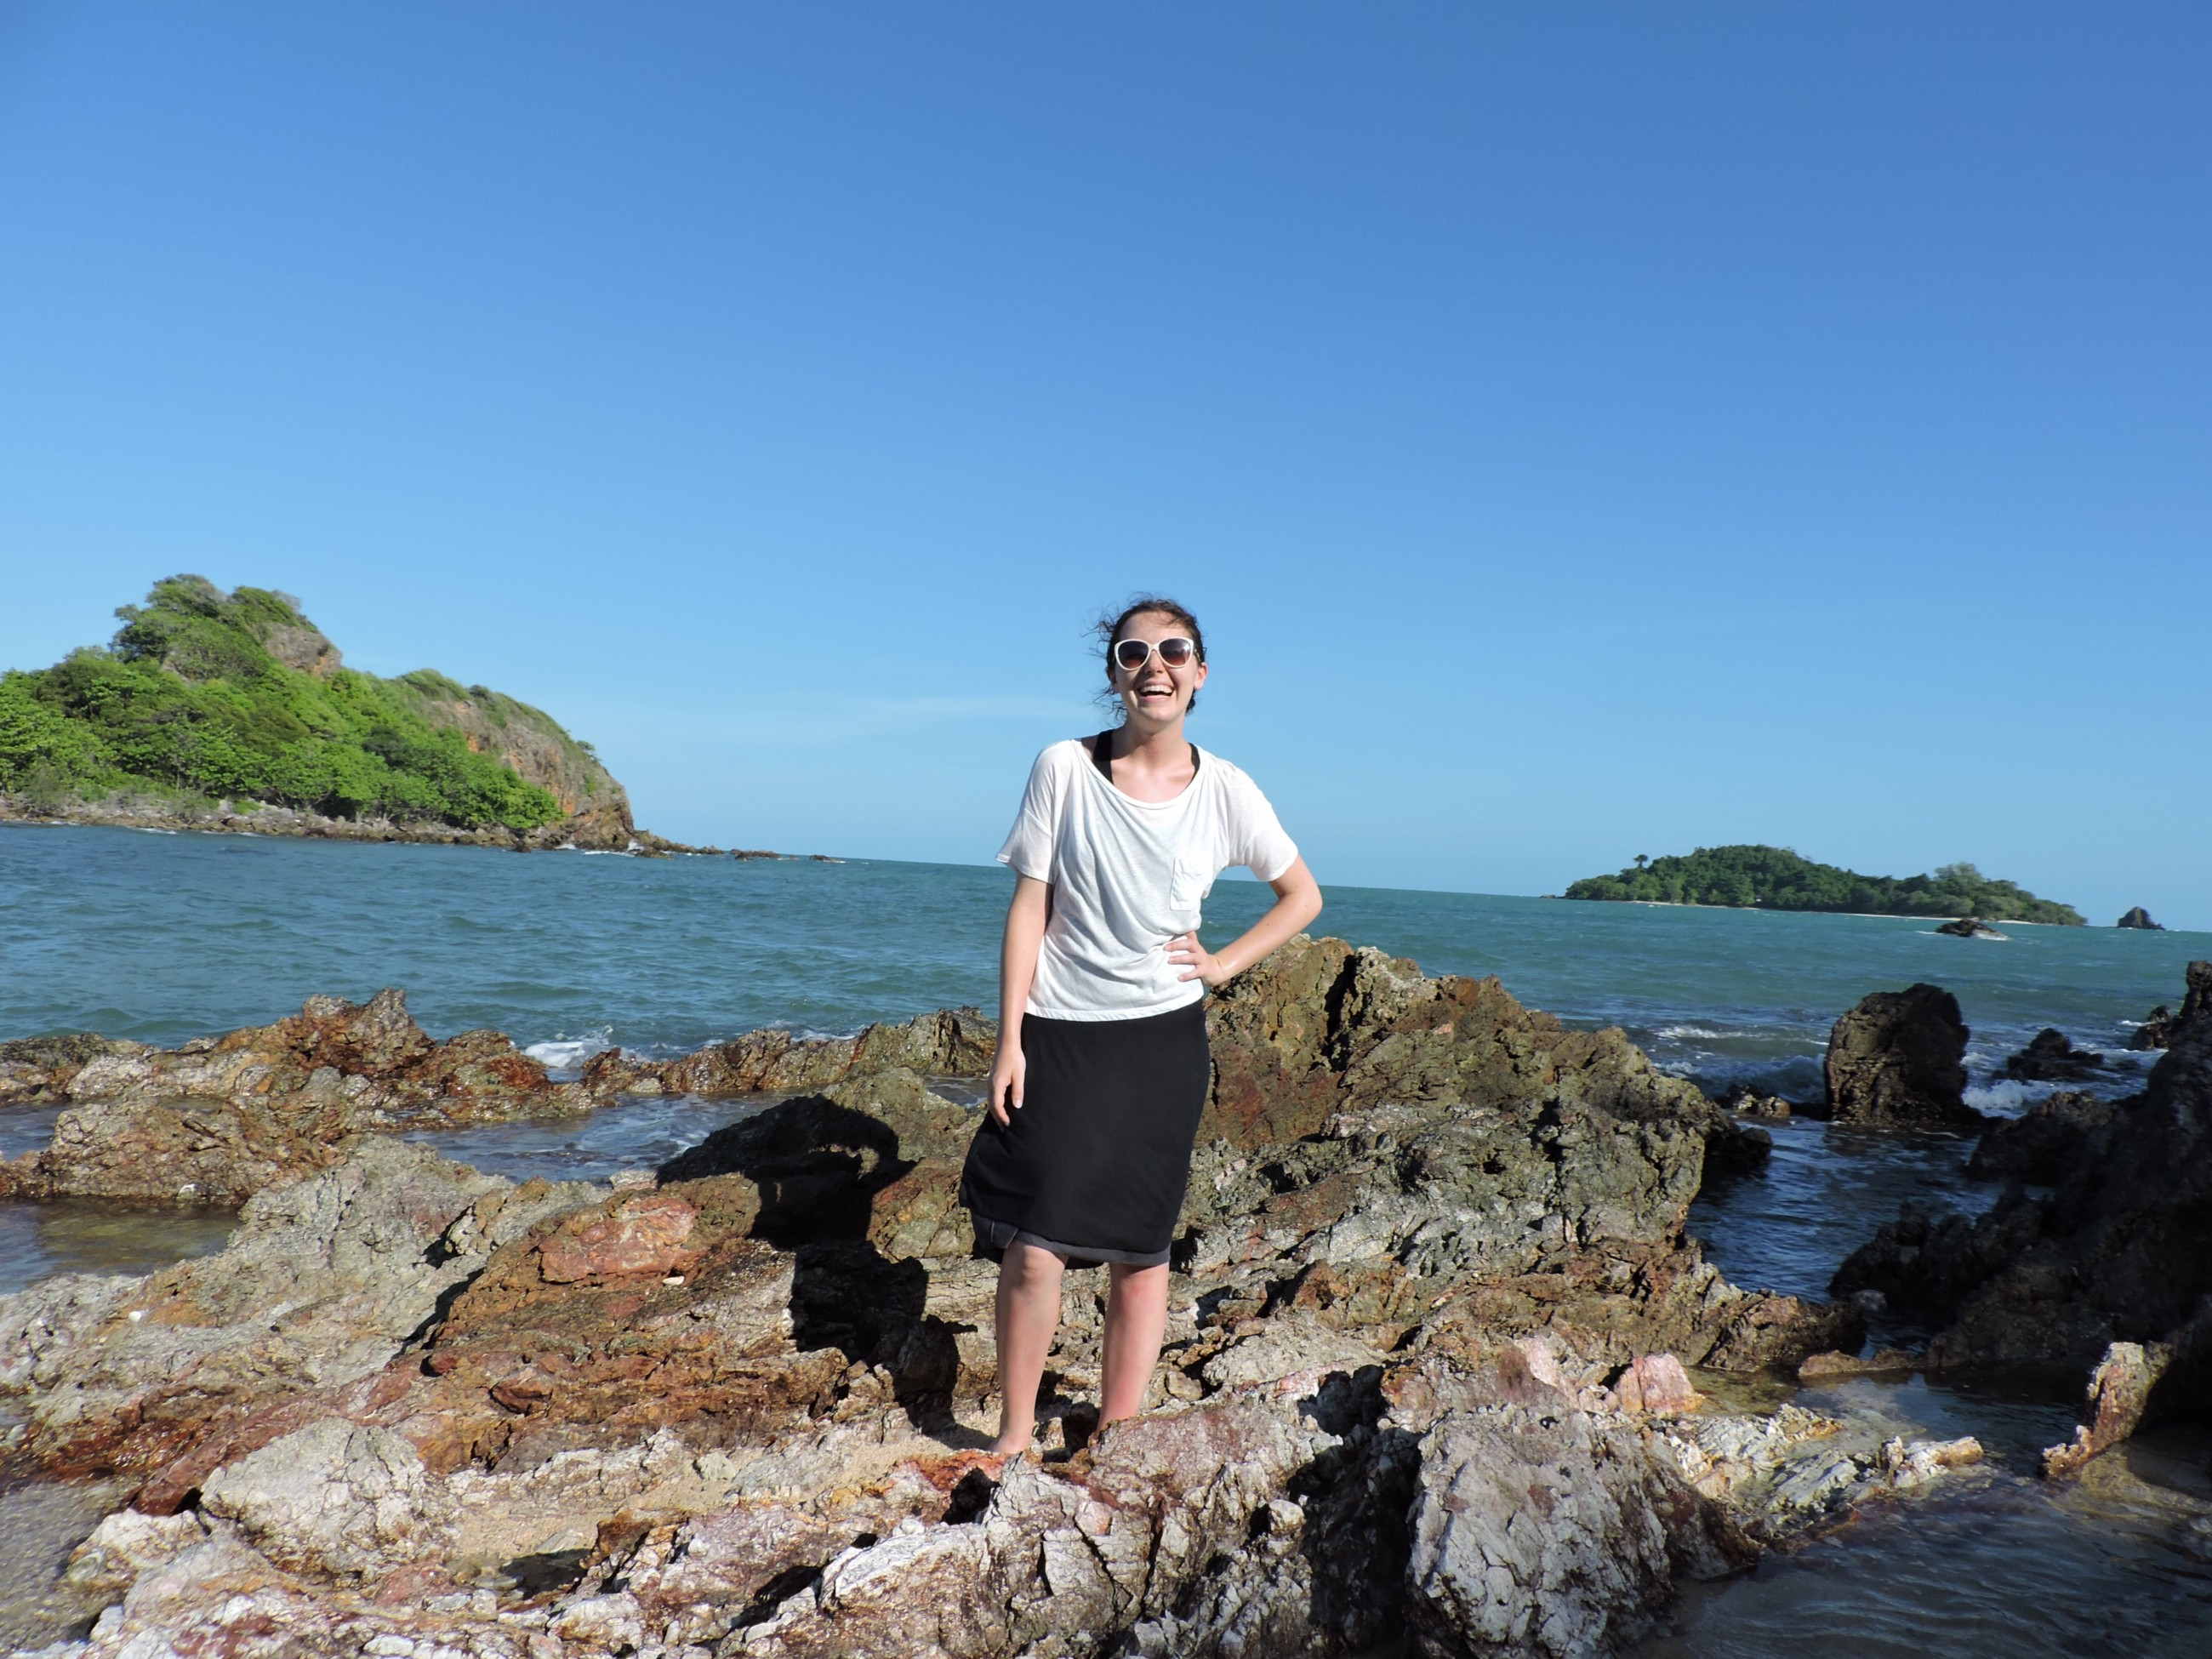 Thailand Part II: The time I threw an iceball at a Taiwanese